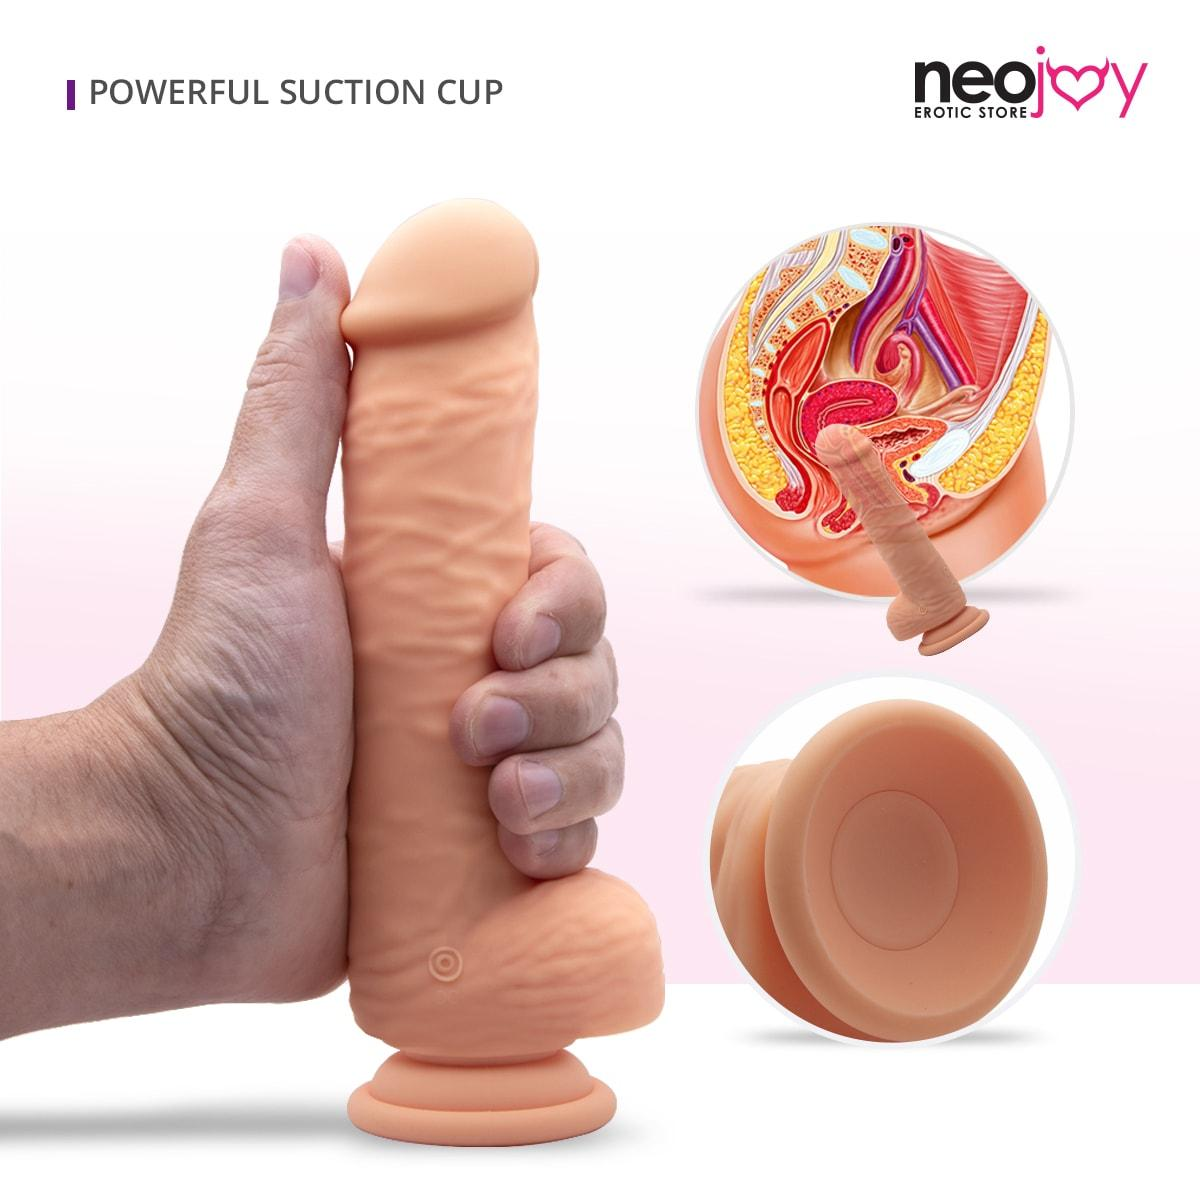 Neojoy Mr. Vibes Skinlike Dong Realistic Dildo Flesh with a Strong Suction Cup 16cm - 6.3 inch Dildos - lucidtoys.com Dildo vibrator sex toy love doll